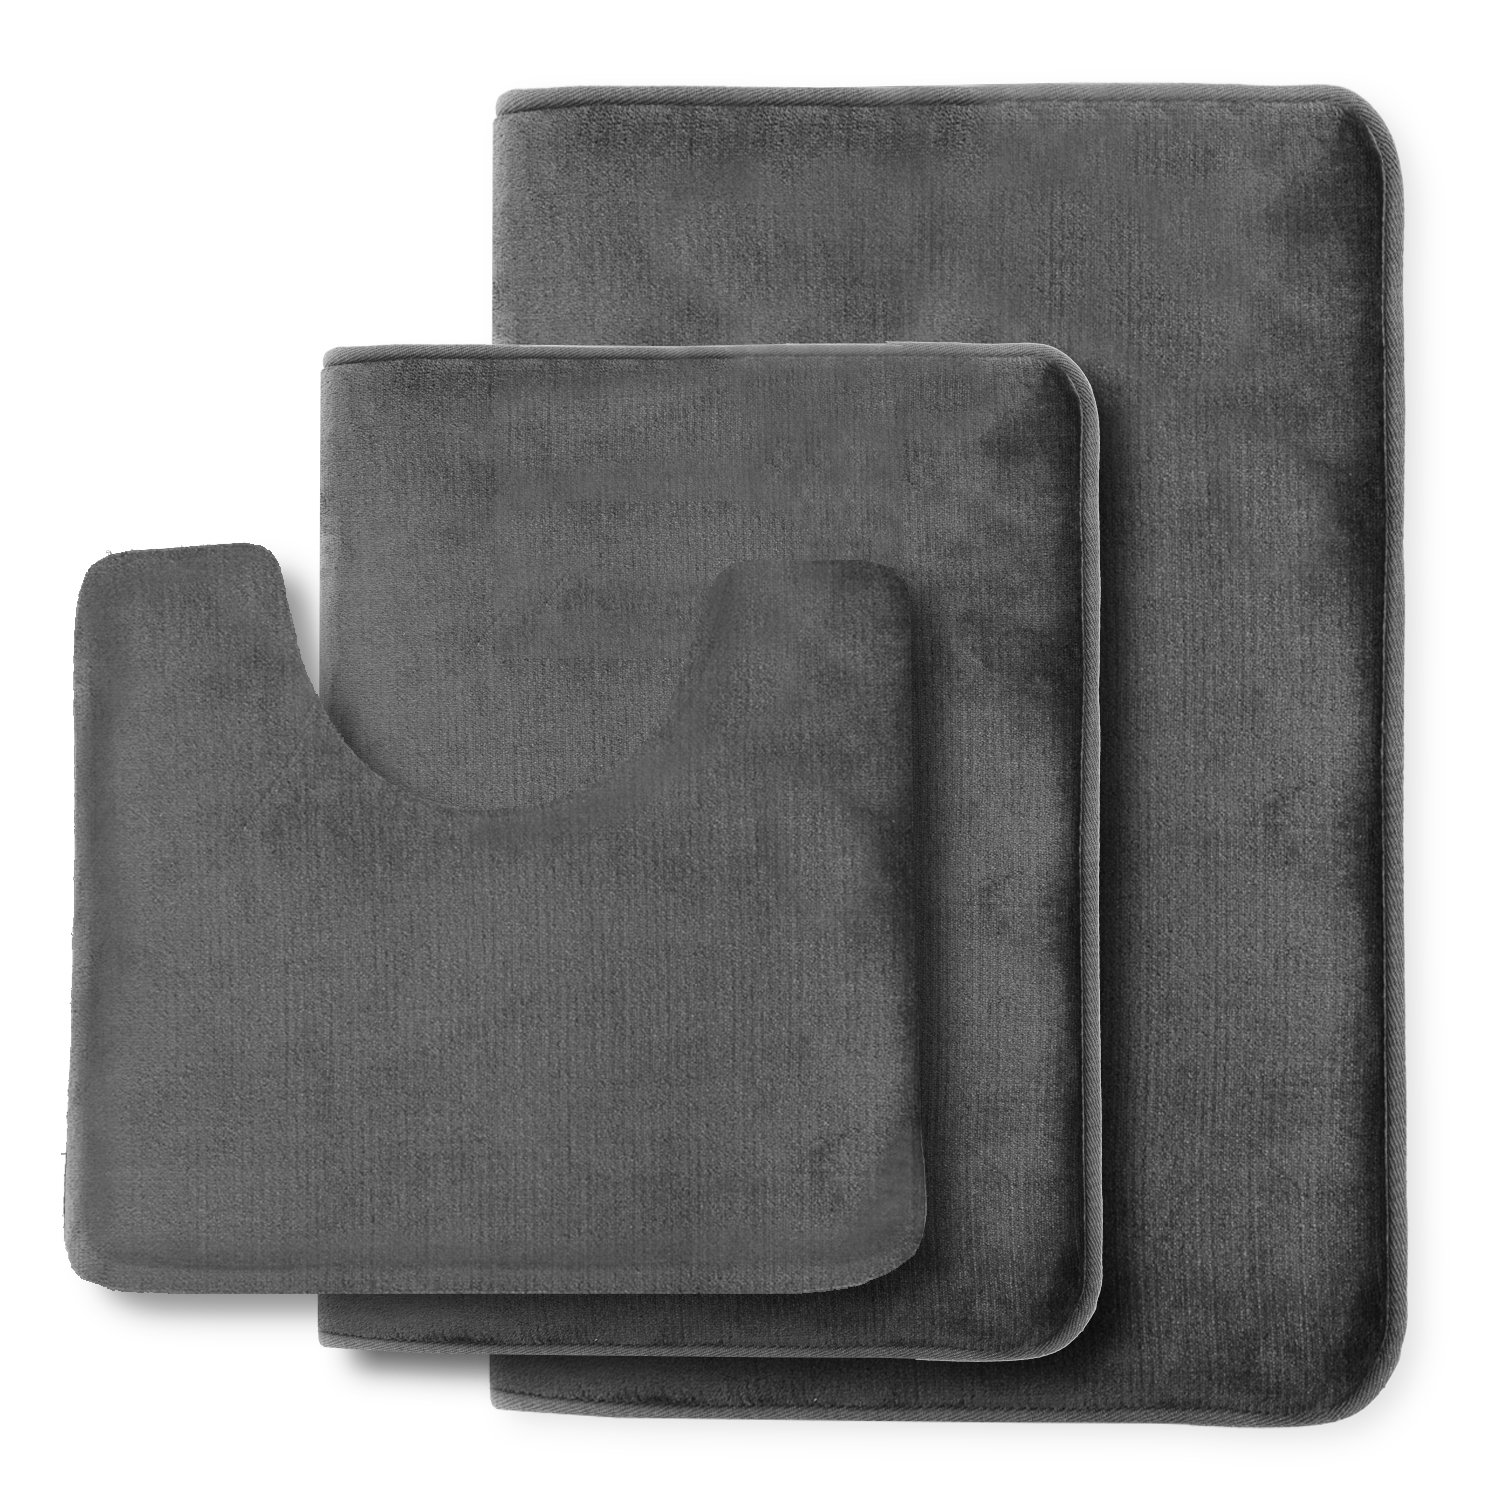 Clara Clark Non Slip Memory Foam Tub-Shower Bath Rug Set, Includes 1 Small Size 17 x 24 in. 1 Large Size 20 X 32 in. 1 Contour Rug 24 x 19 In. - Gray by Clara Clark